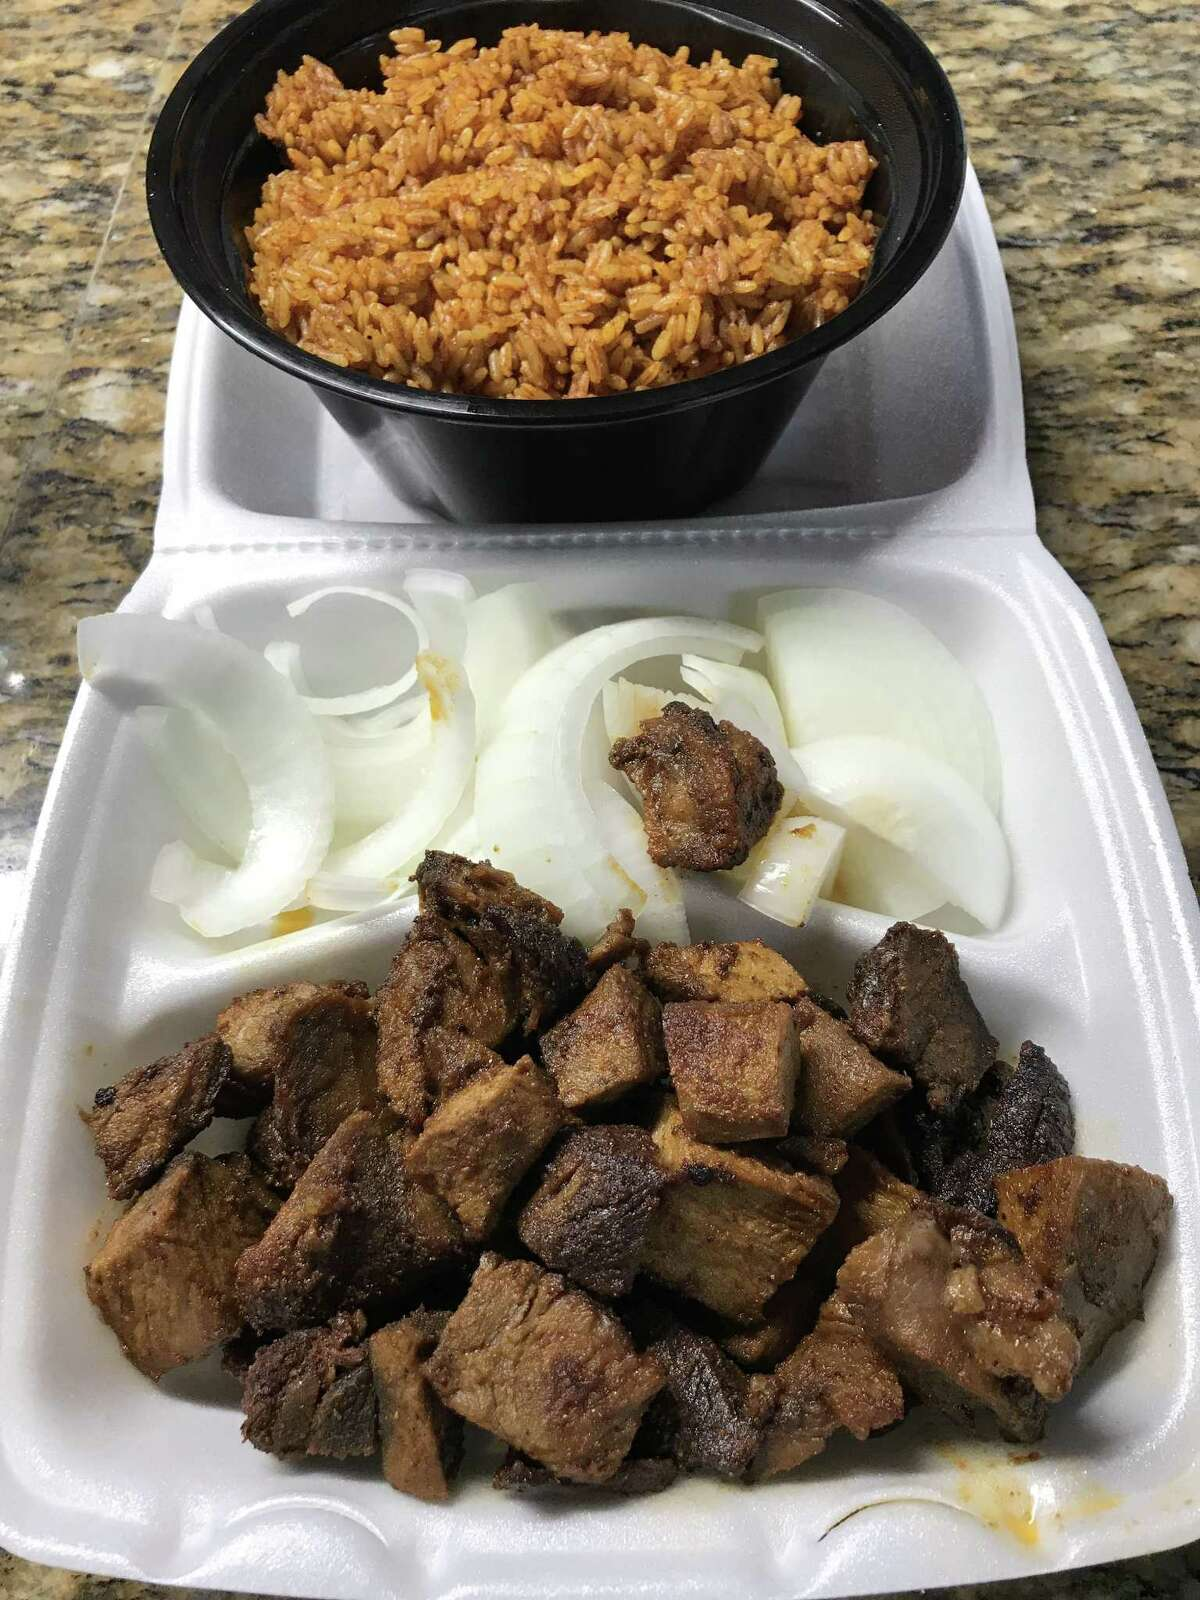 Grilled chunks of marinated goat and jollof rice from Sabo Suya Spot, a Nigerian restaurant, 9780 Bossonnet, Houston.